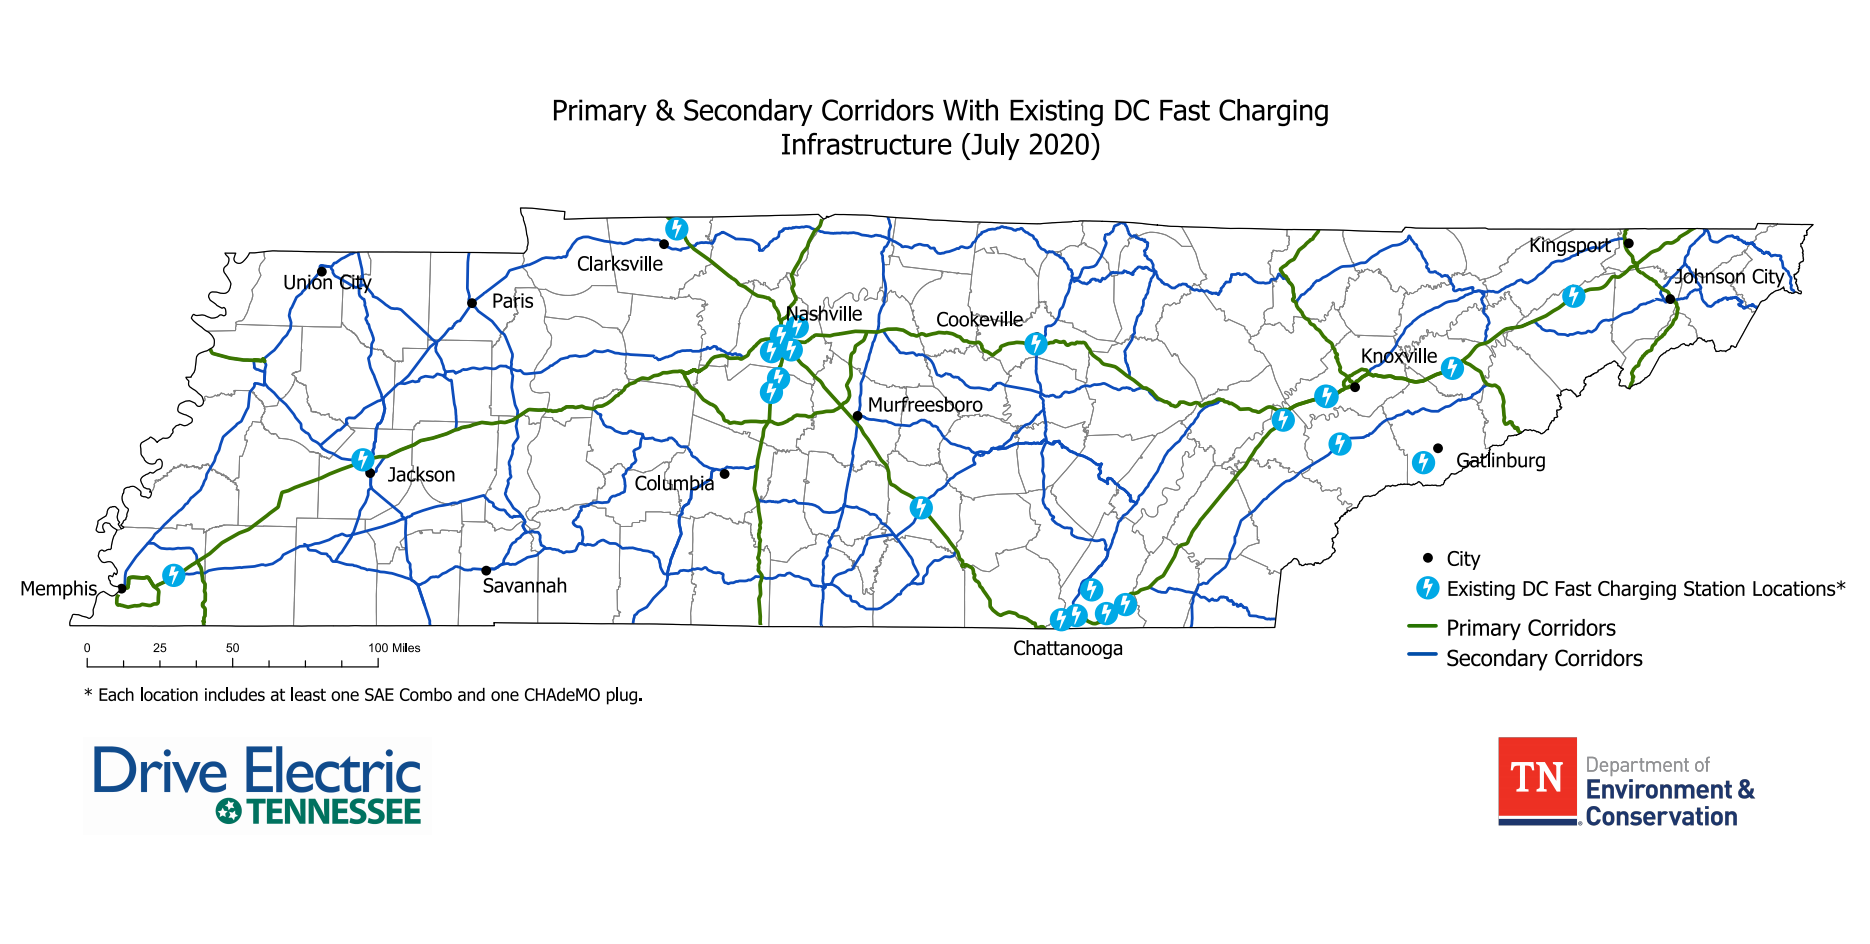 Map of Electric Vehicle charging corridors in Tennessee